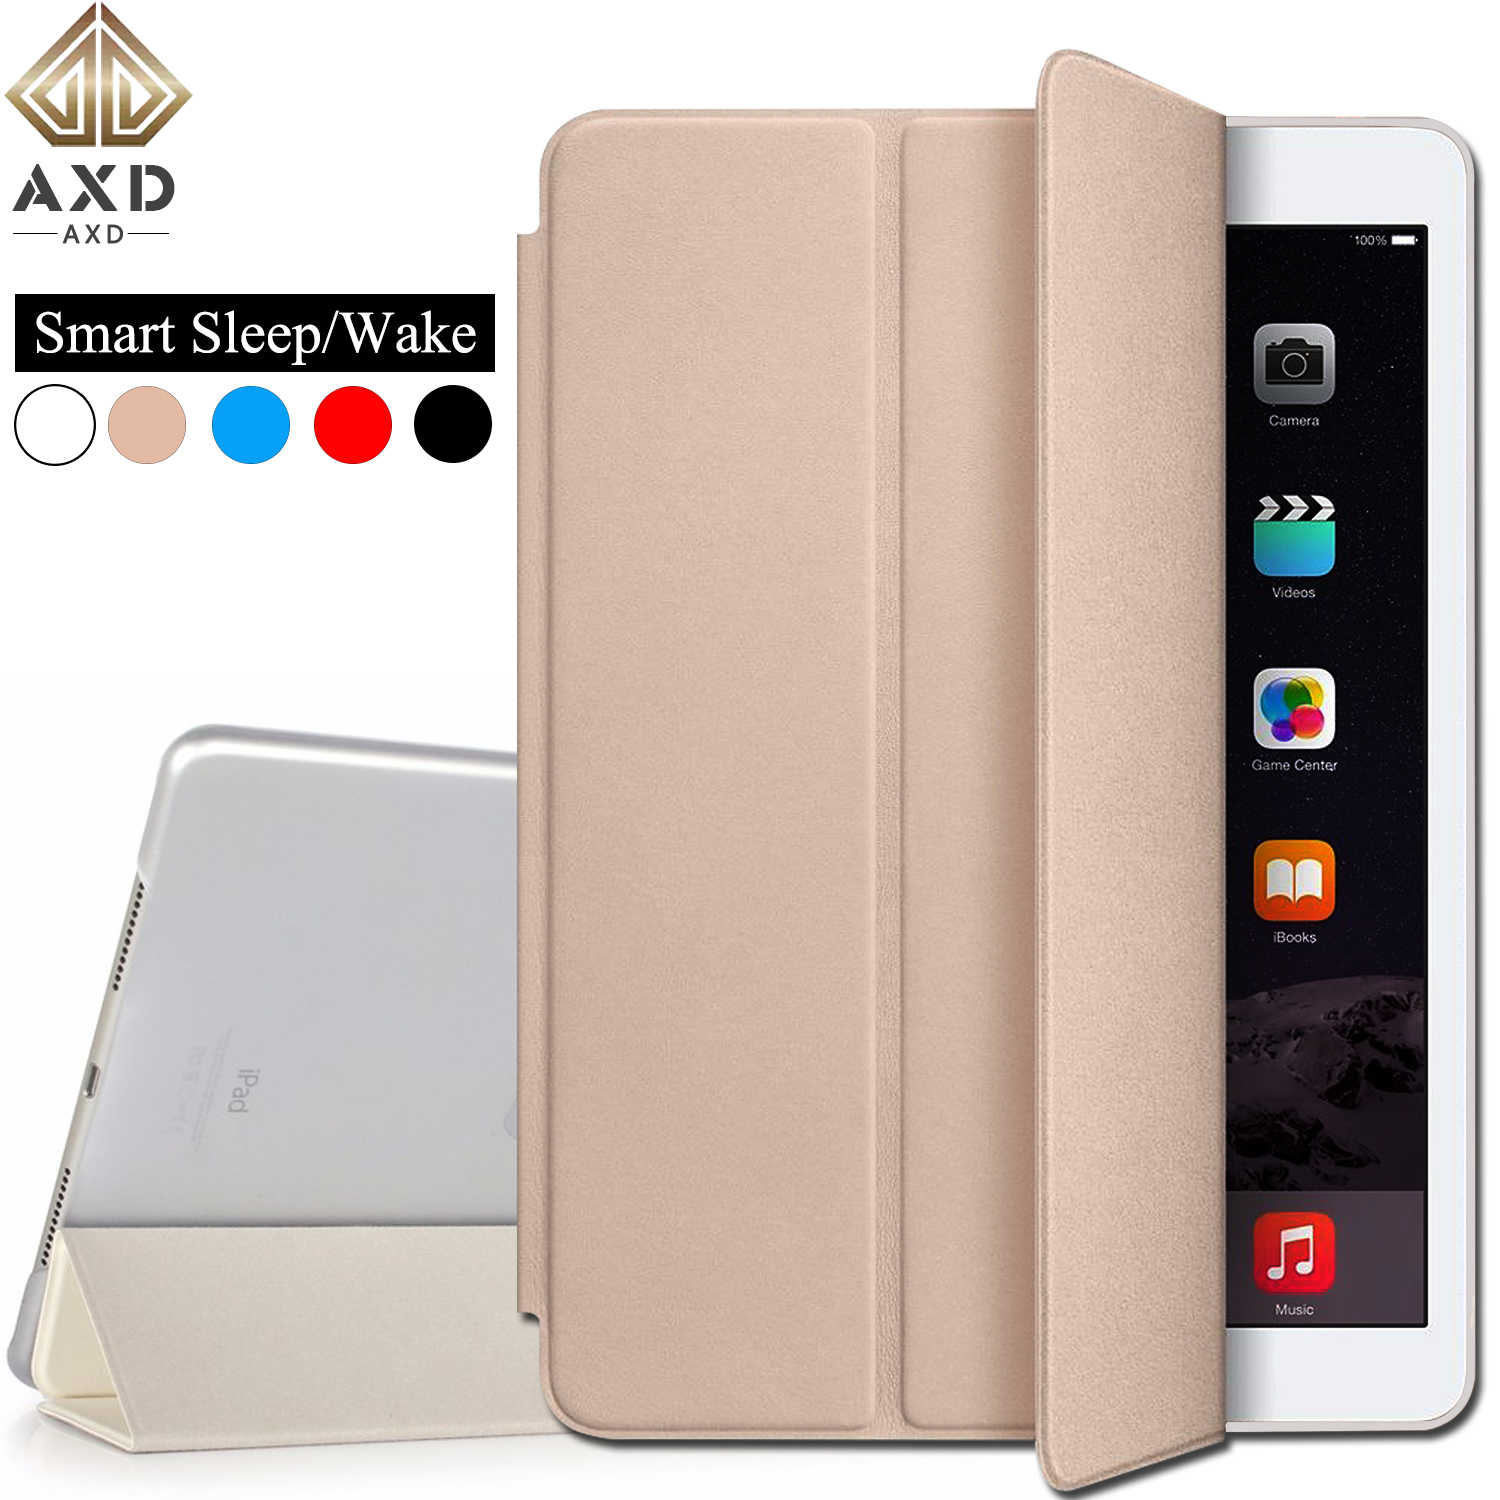 AXD Flip leather case for Huawei MediaPad T3 10 9.6-inch fundas smart sleep Wake cover Stand capa For AGS-W09/L09/L03 LTE wifi